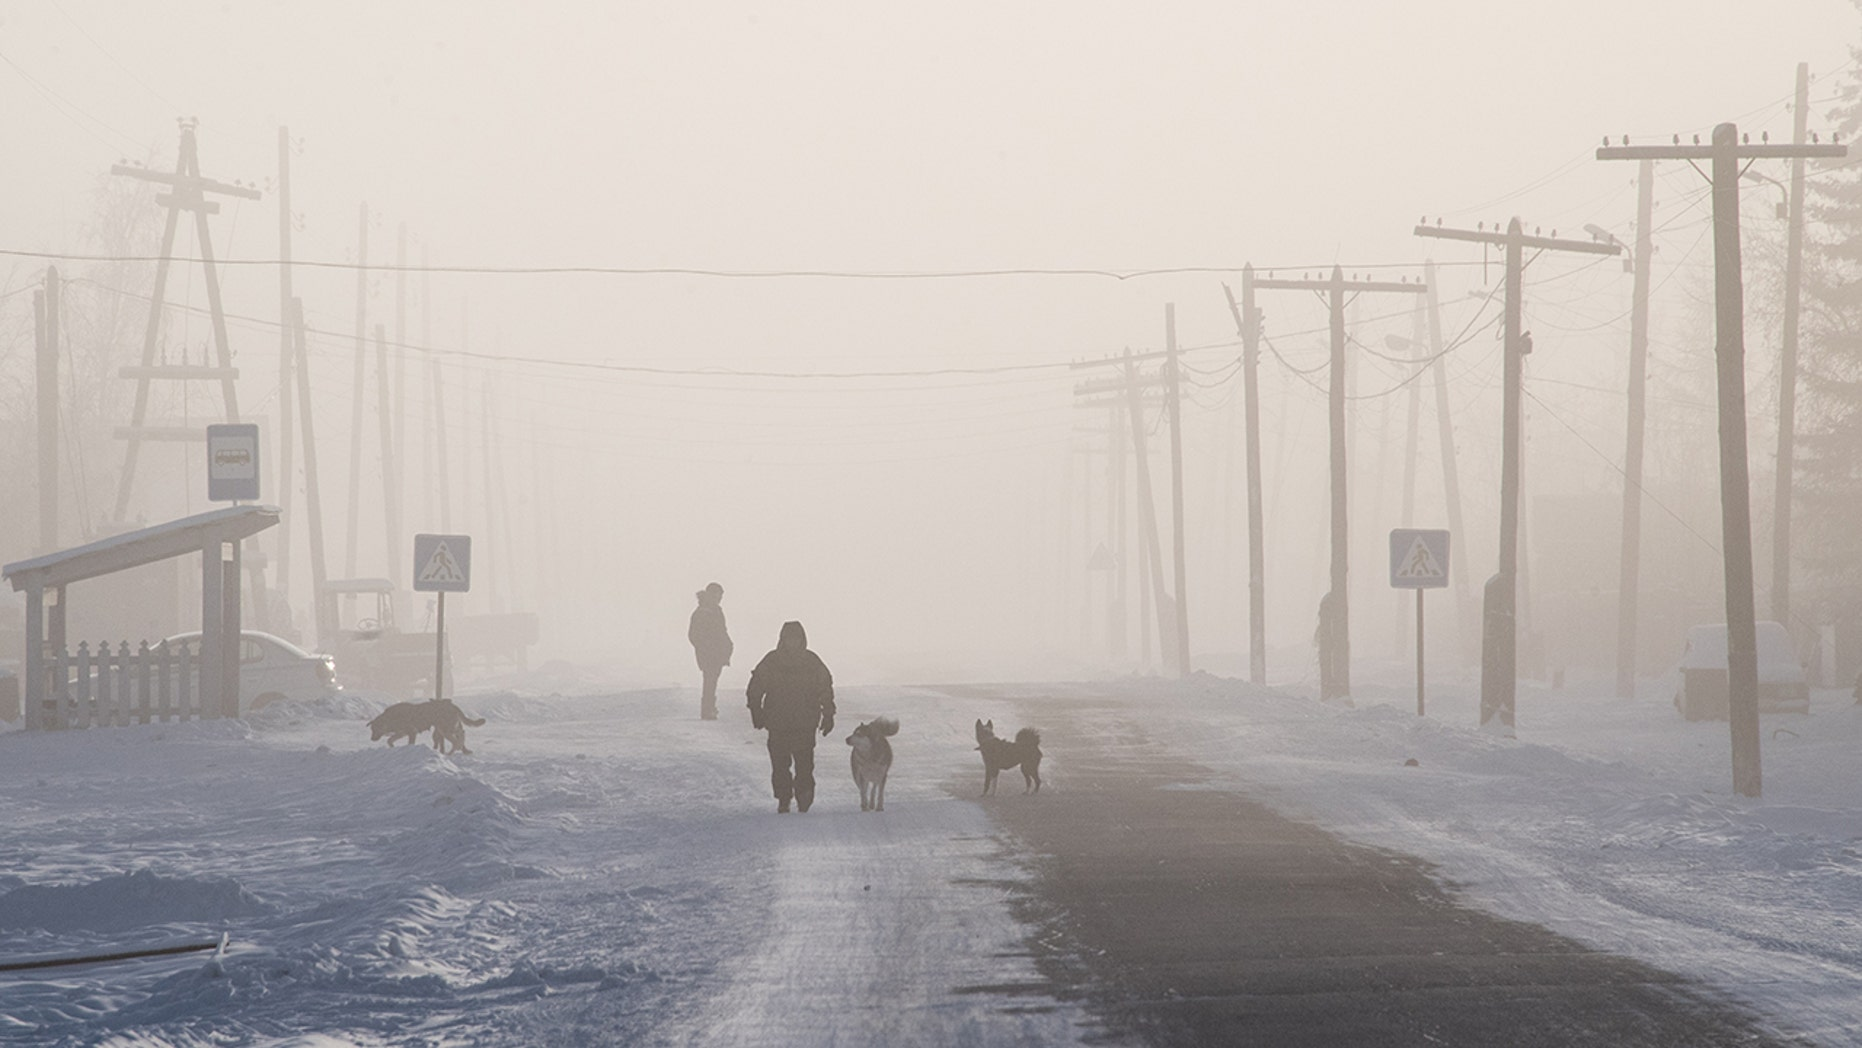 TOPSHOT - A man is surrounded by dogs as he walks on the main street of the settlement of Oy, some 70 km south of Yakutsk, with the air temperature at about minus 41 degrees Celsius, on November 27, 2018. (Photo by Mladen ANTONOV / AFP) (Photo credit should read MLADEN ANTONOV/AFP/Getty Images)